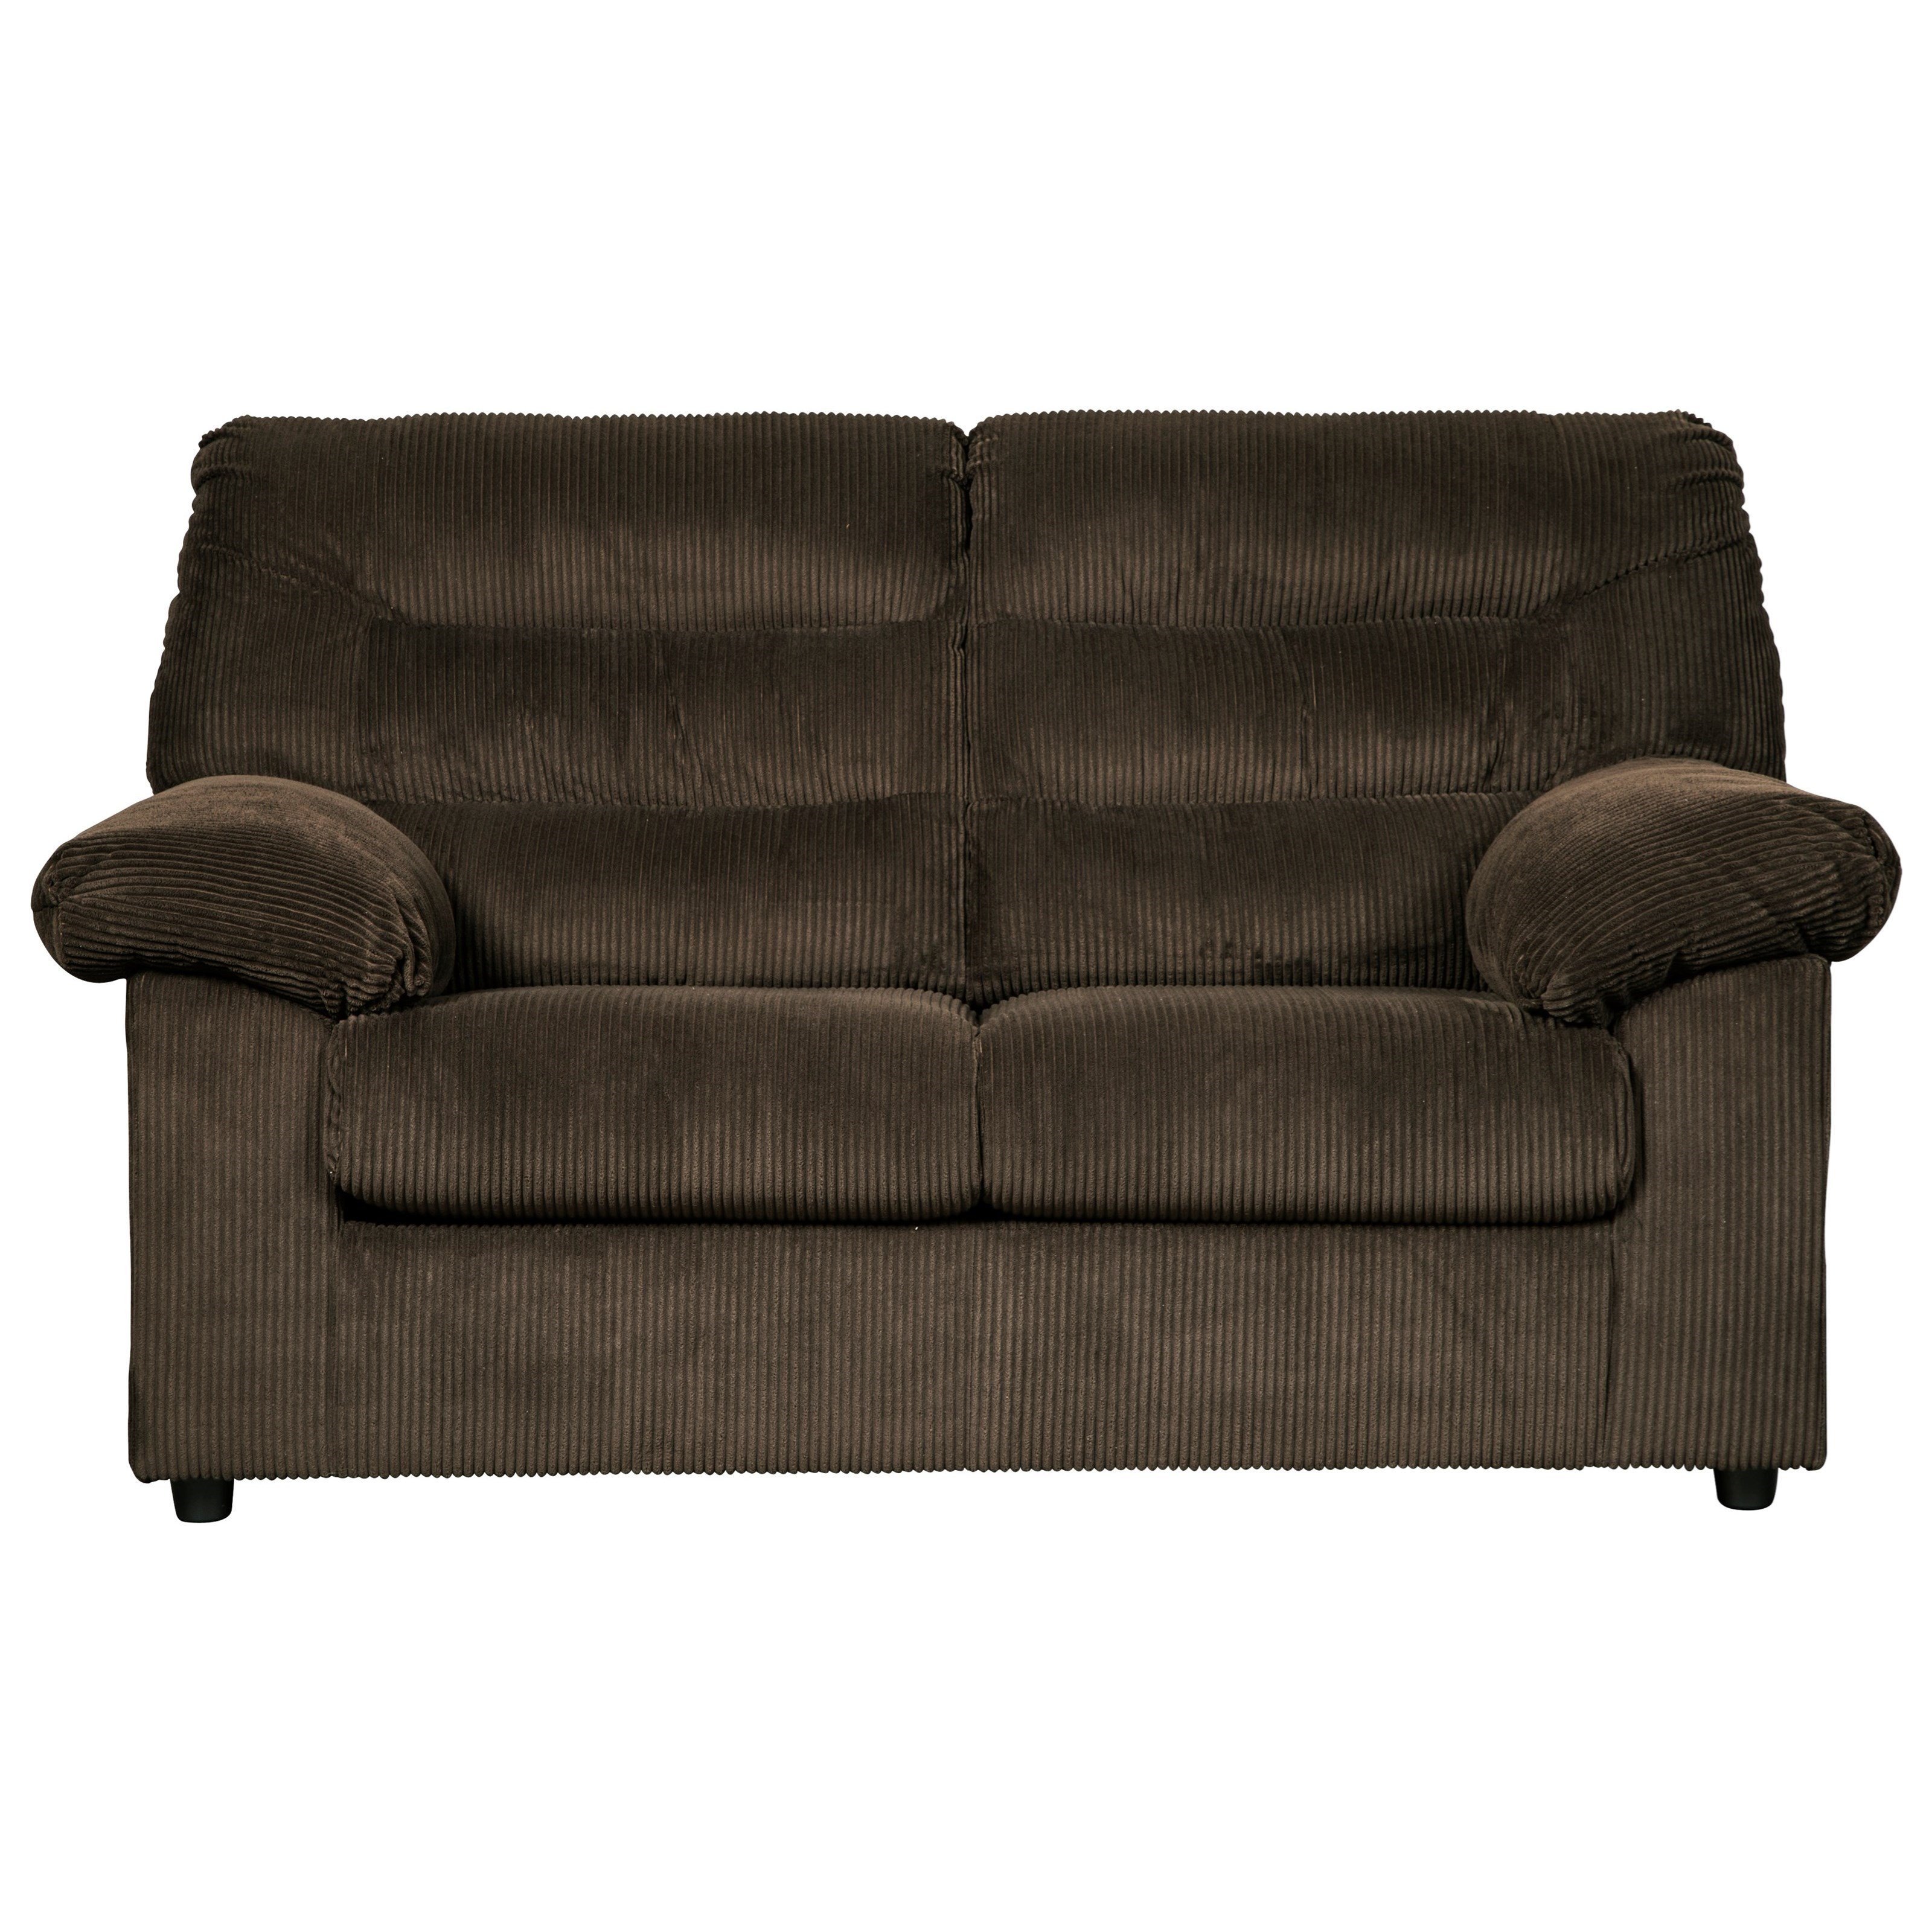 Signature Design by Ashley Gosnell Loveseat - Item Number: 9610135